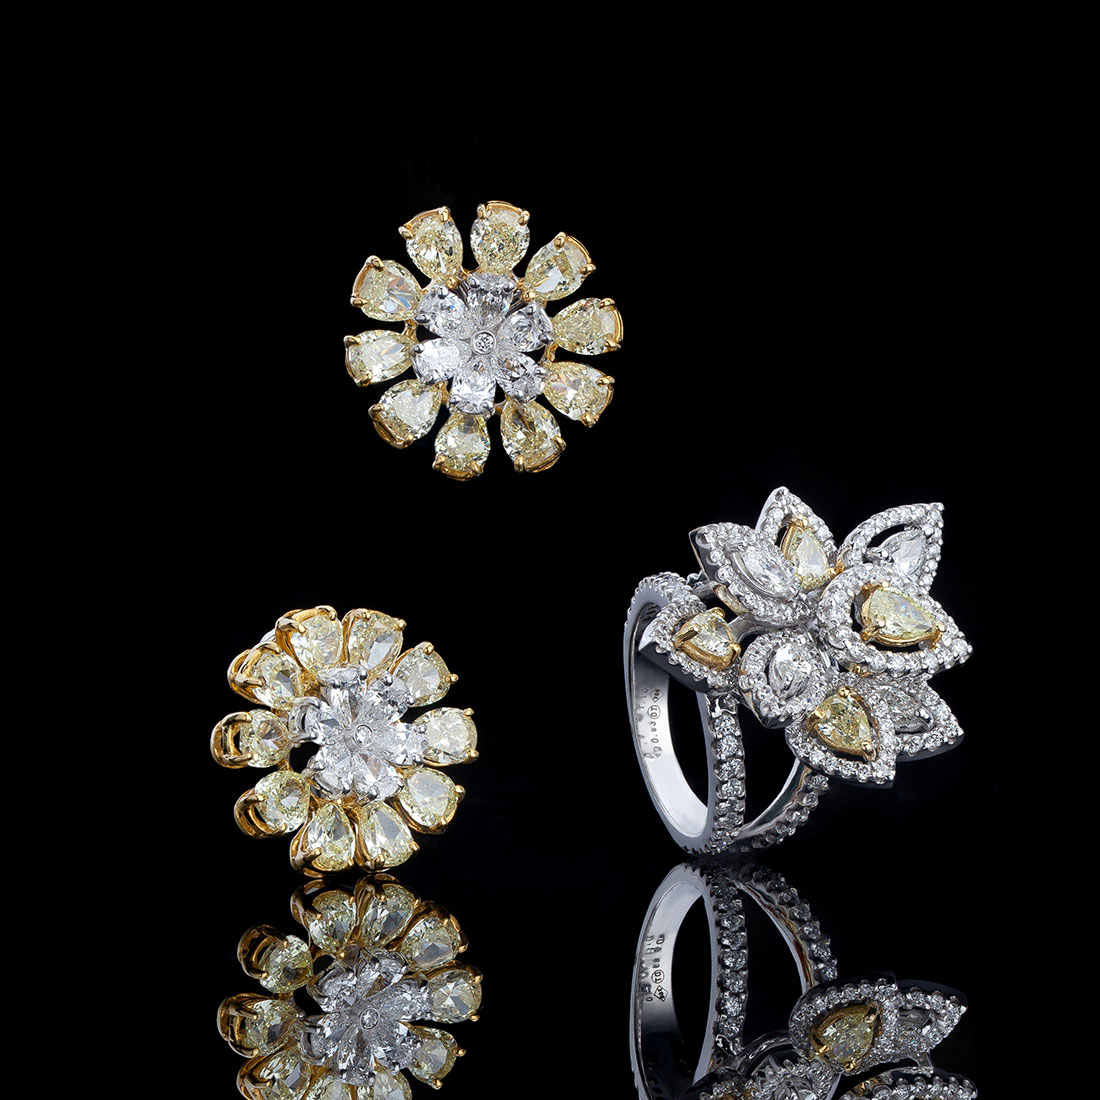 Canary and White Diamond Petal Ring & Floral Blooming Earrings